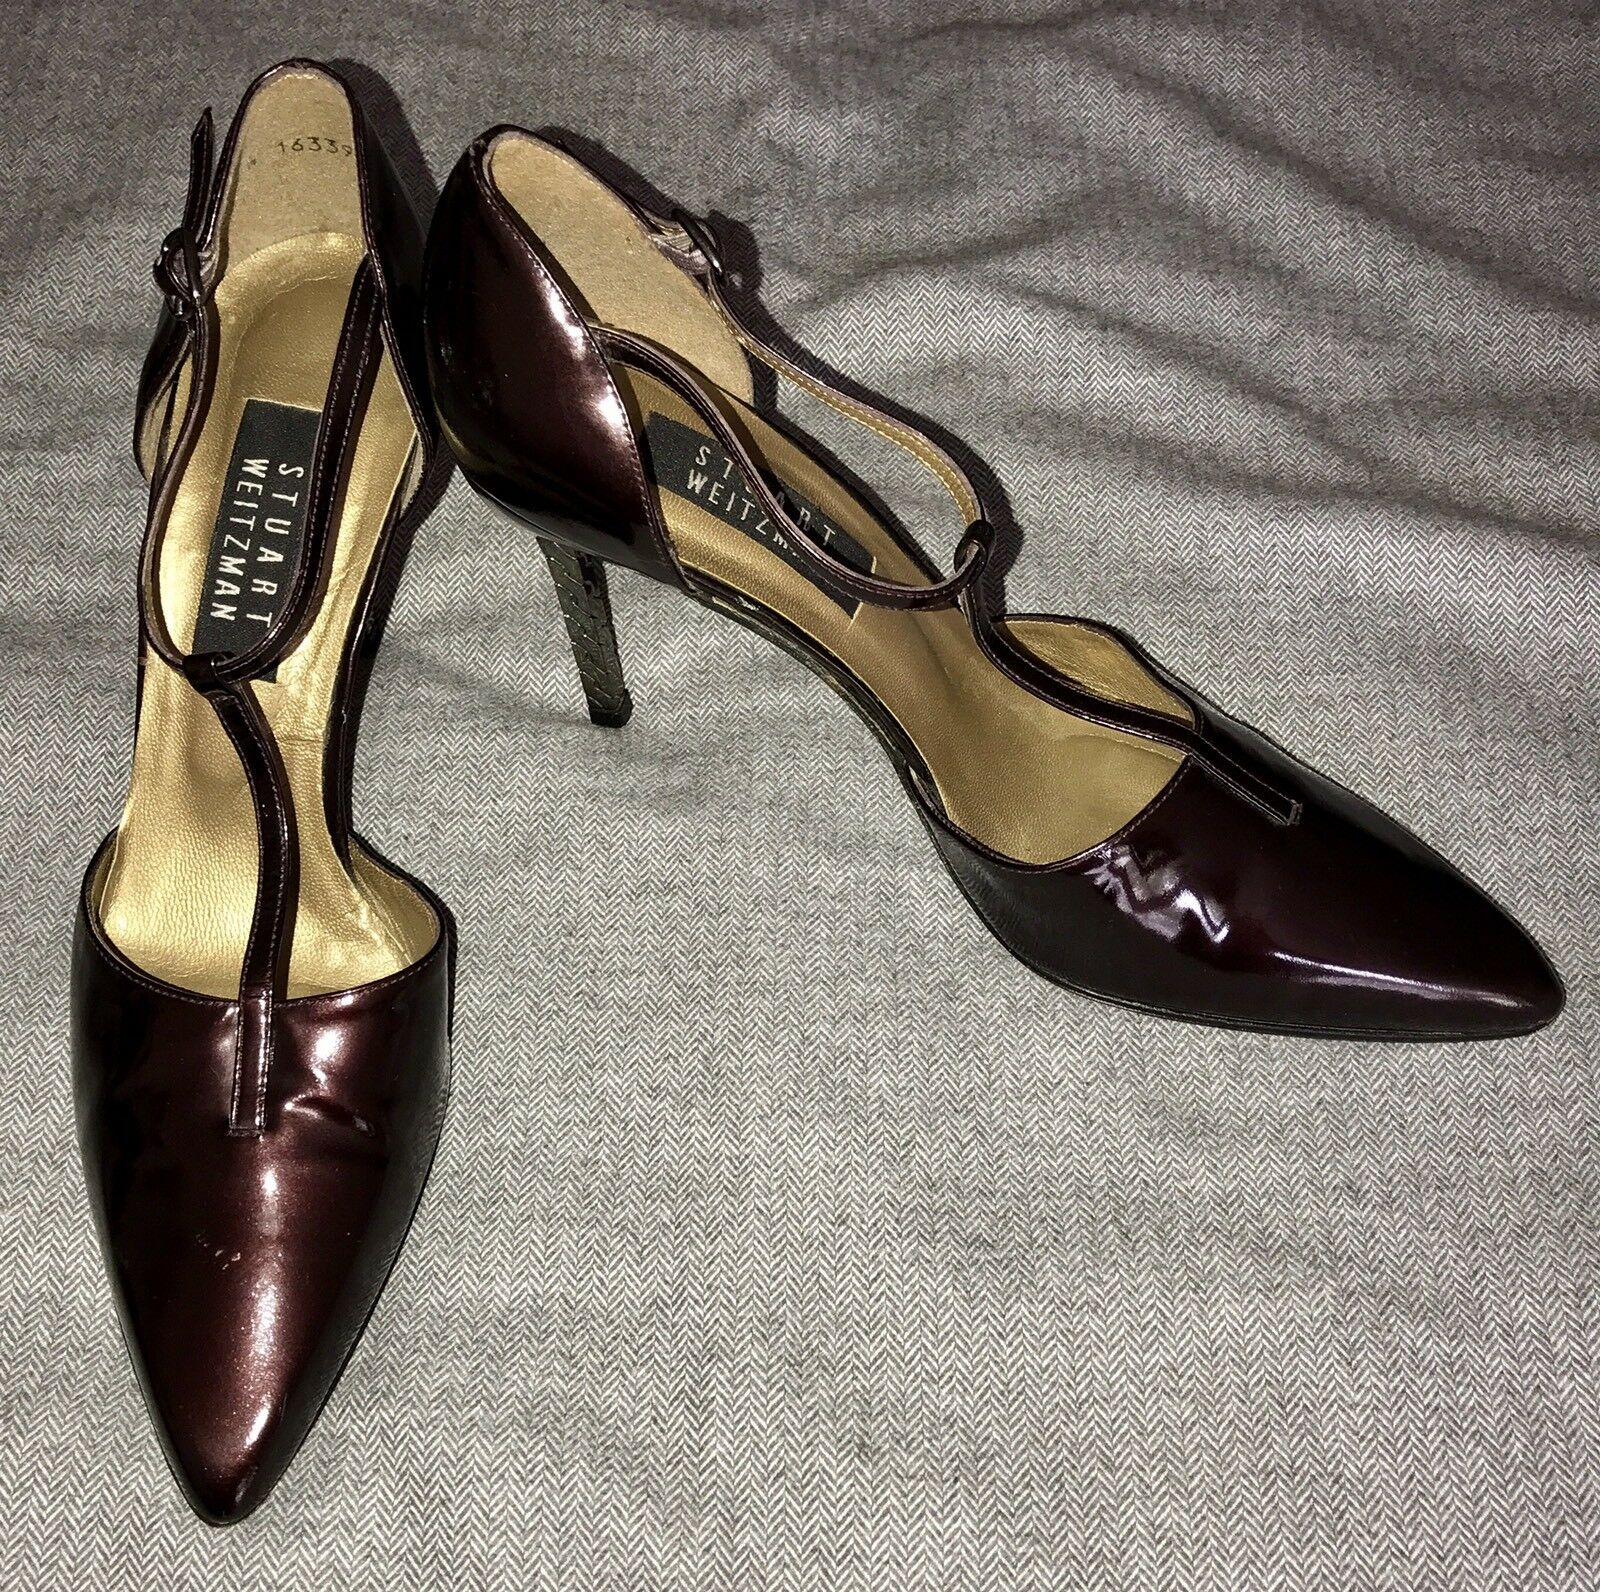 Stuart Weitzman Heels Size Buckle 8.5 Red Patent Leather Buckle Size GUC eb720d